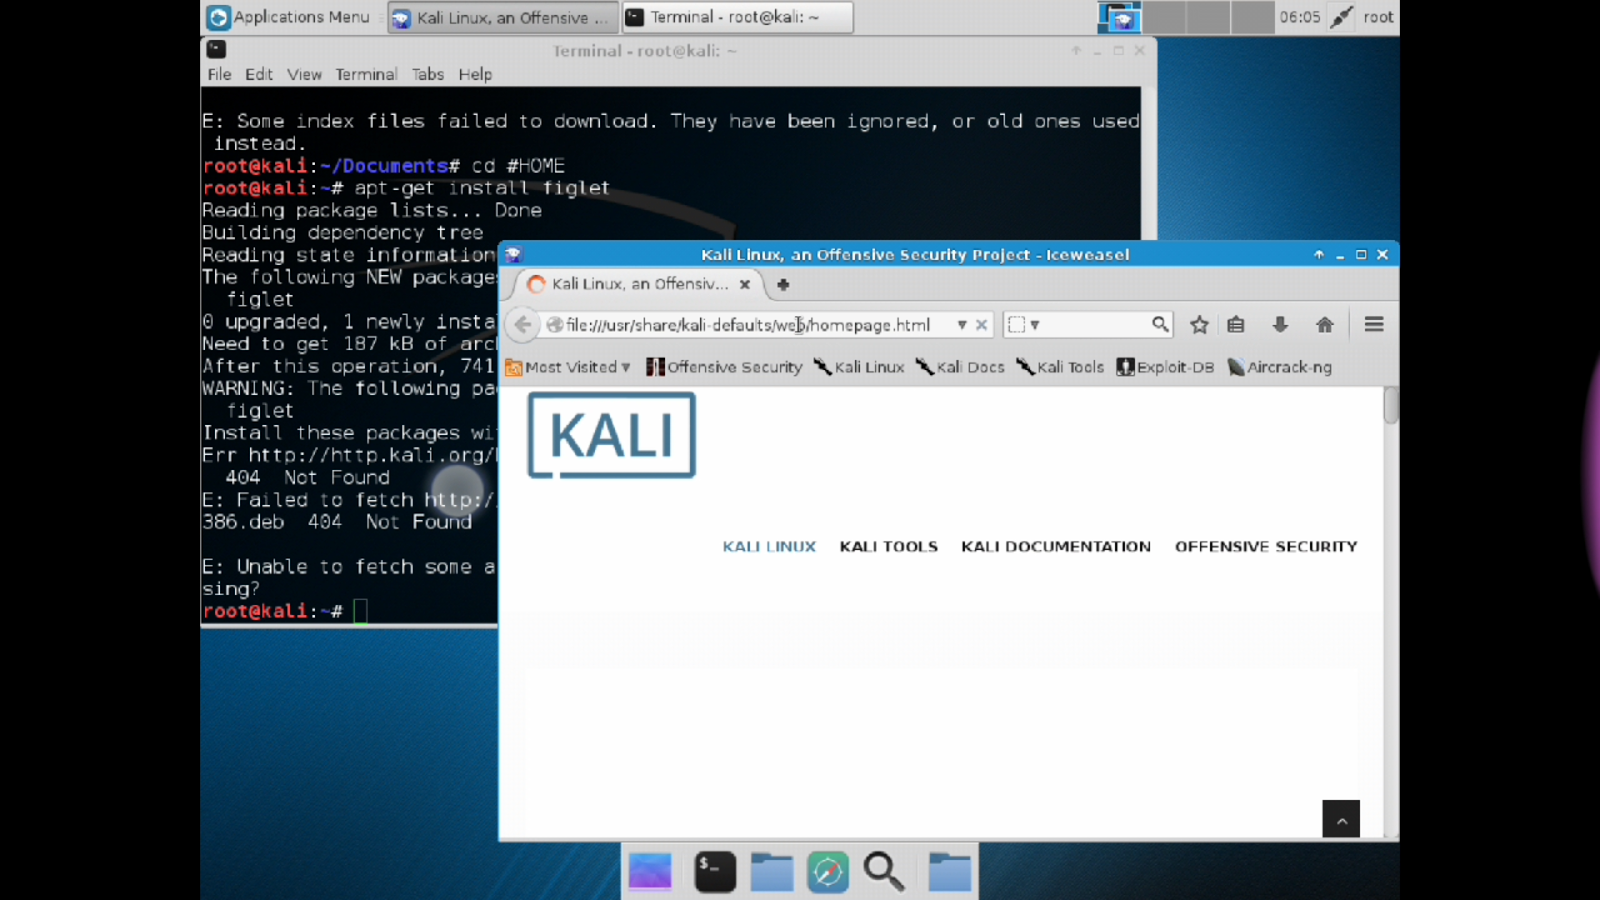 How to Install Latest Kali Linux on Any Android Phone without Root